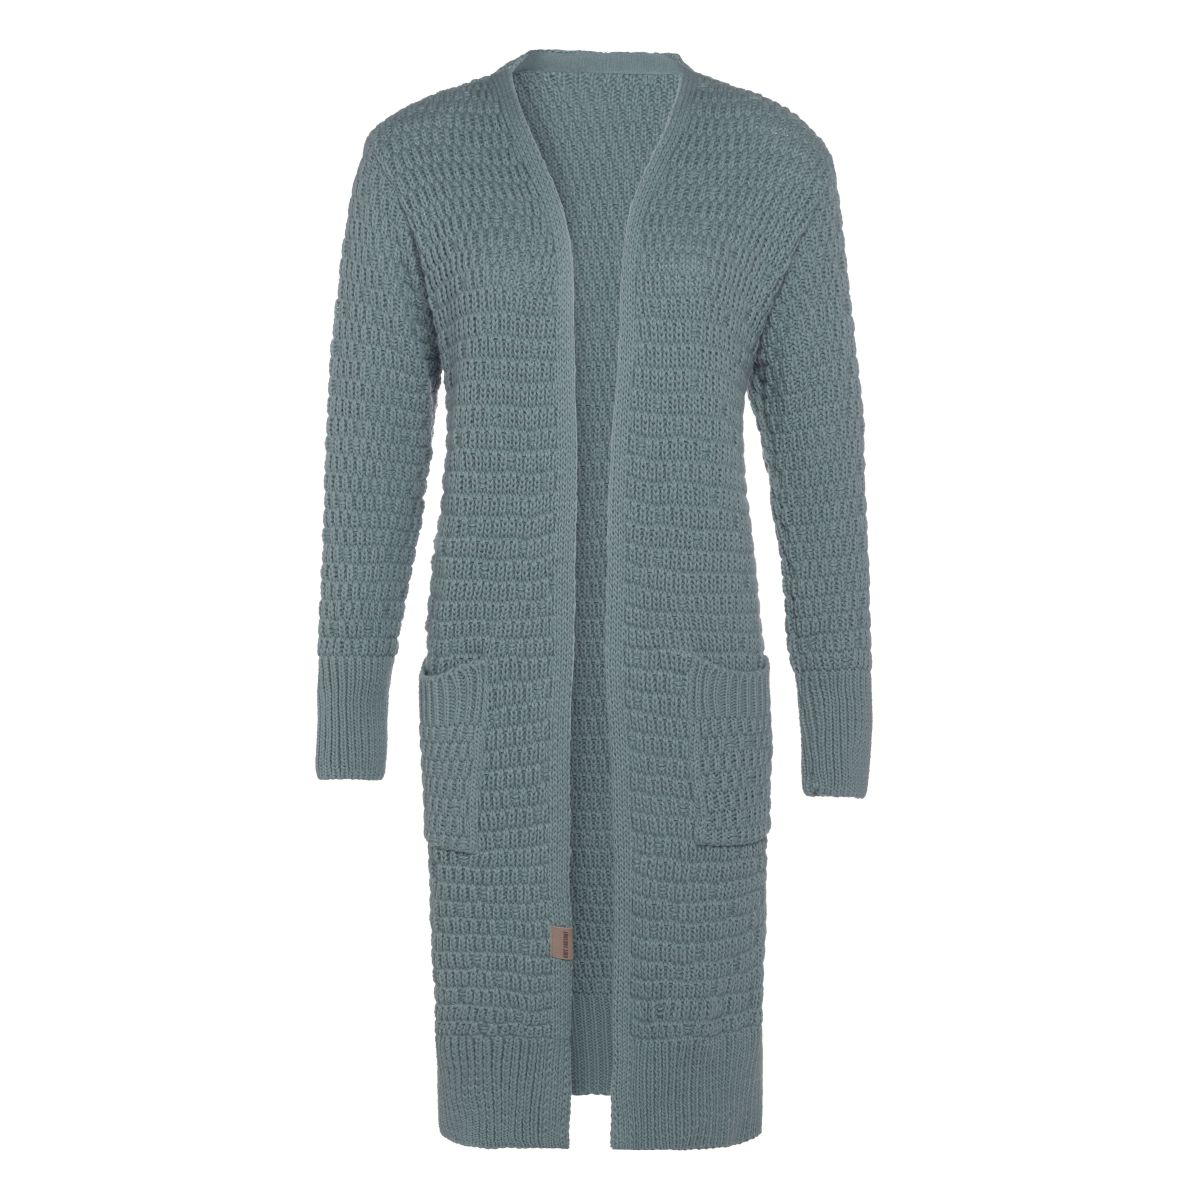 jaida long knitted cardigan stone green 3638 with side pockets